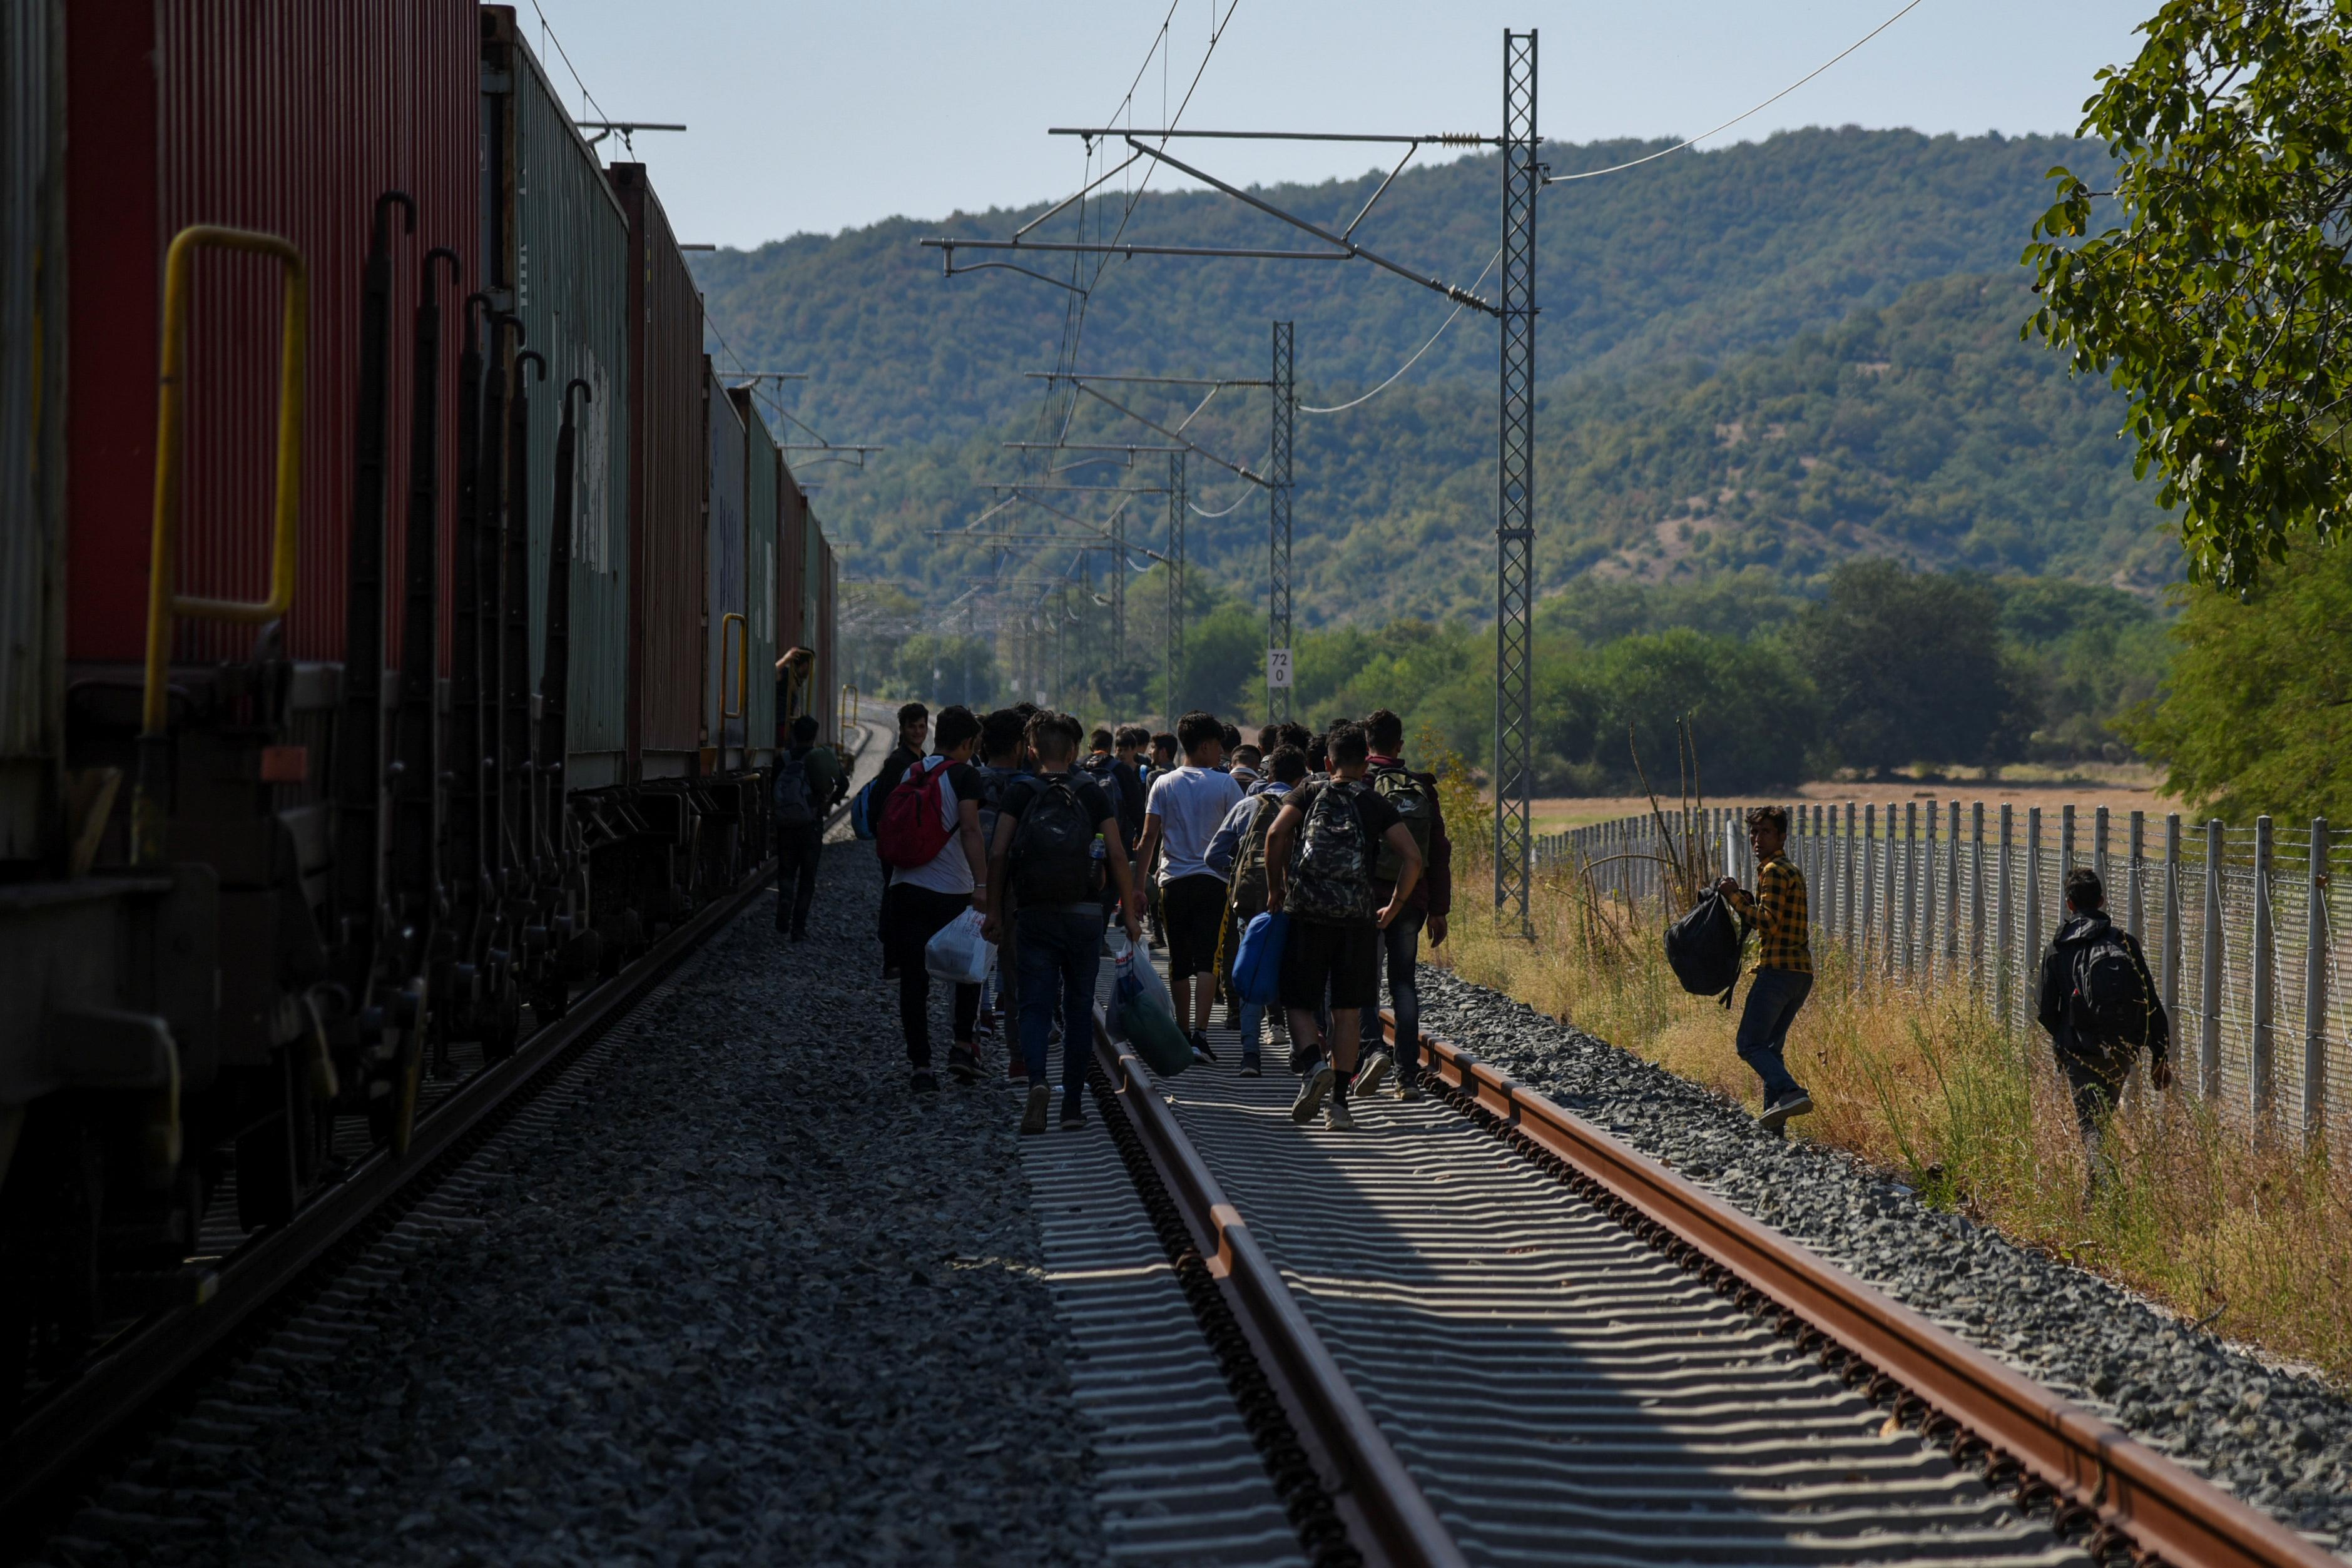 Migrant stowaways ride Greek freight trains seeking escape to north